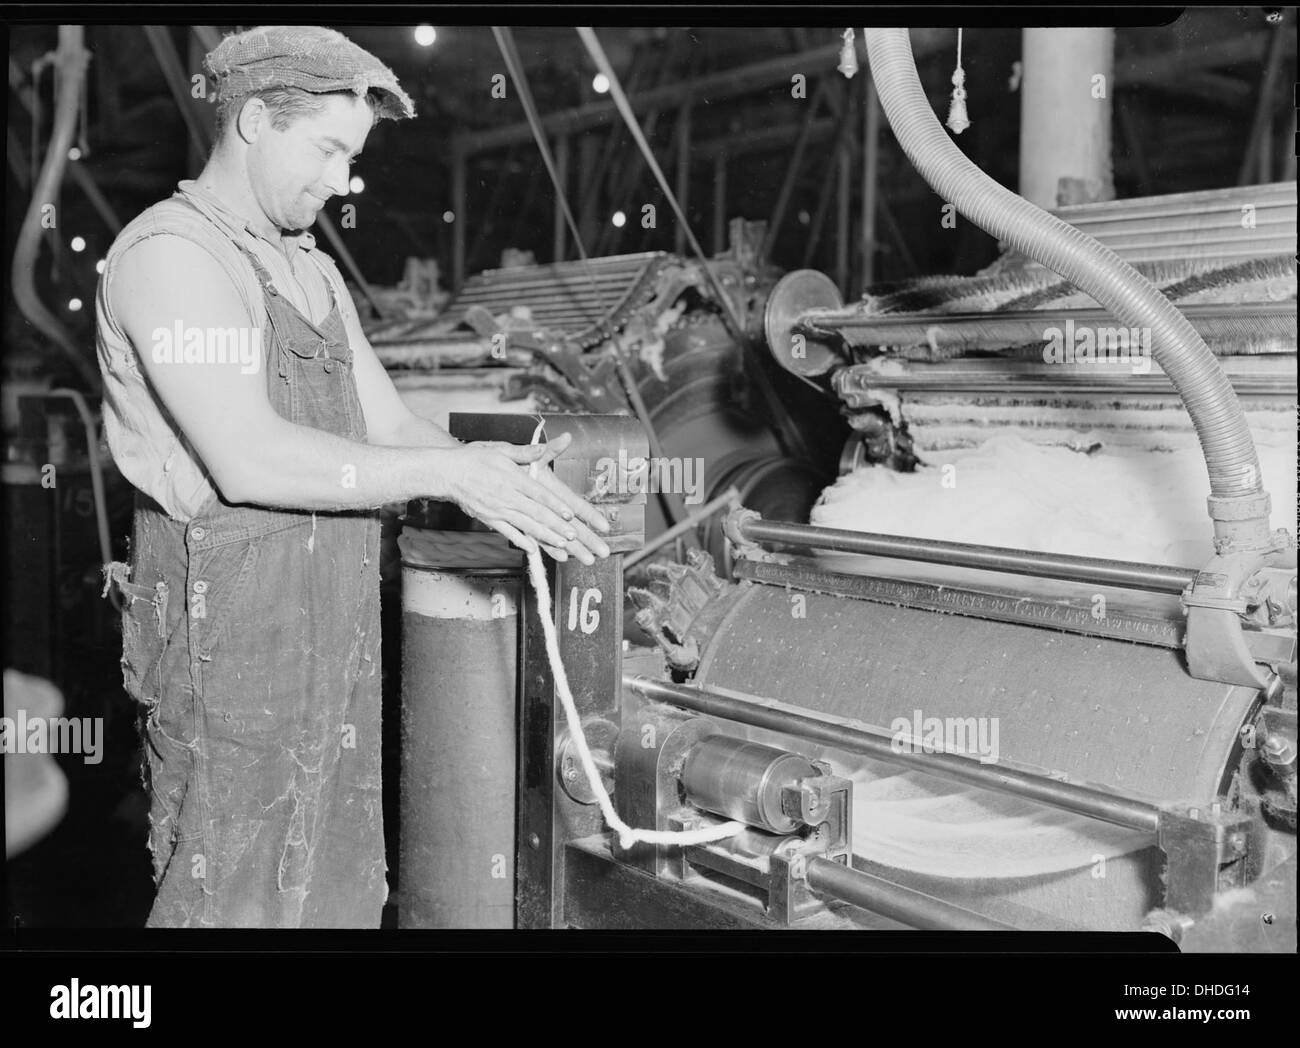 High Point, North Carolina - Textiles  Pickett Yarn Mill  Cards